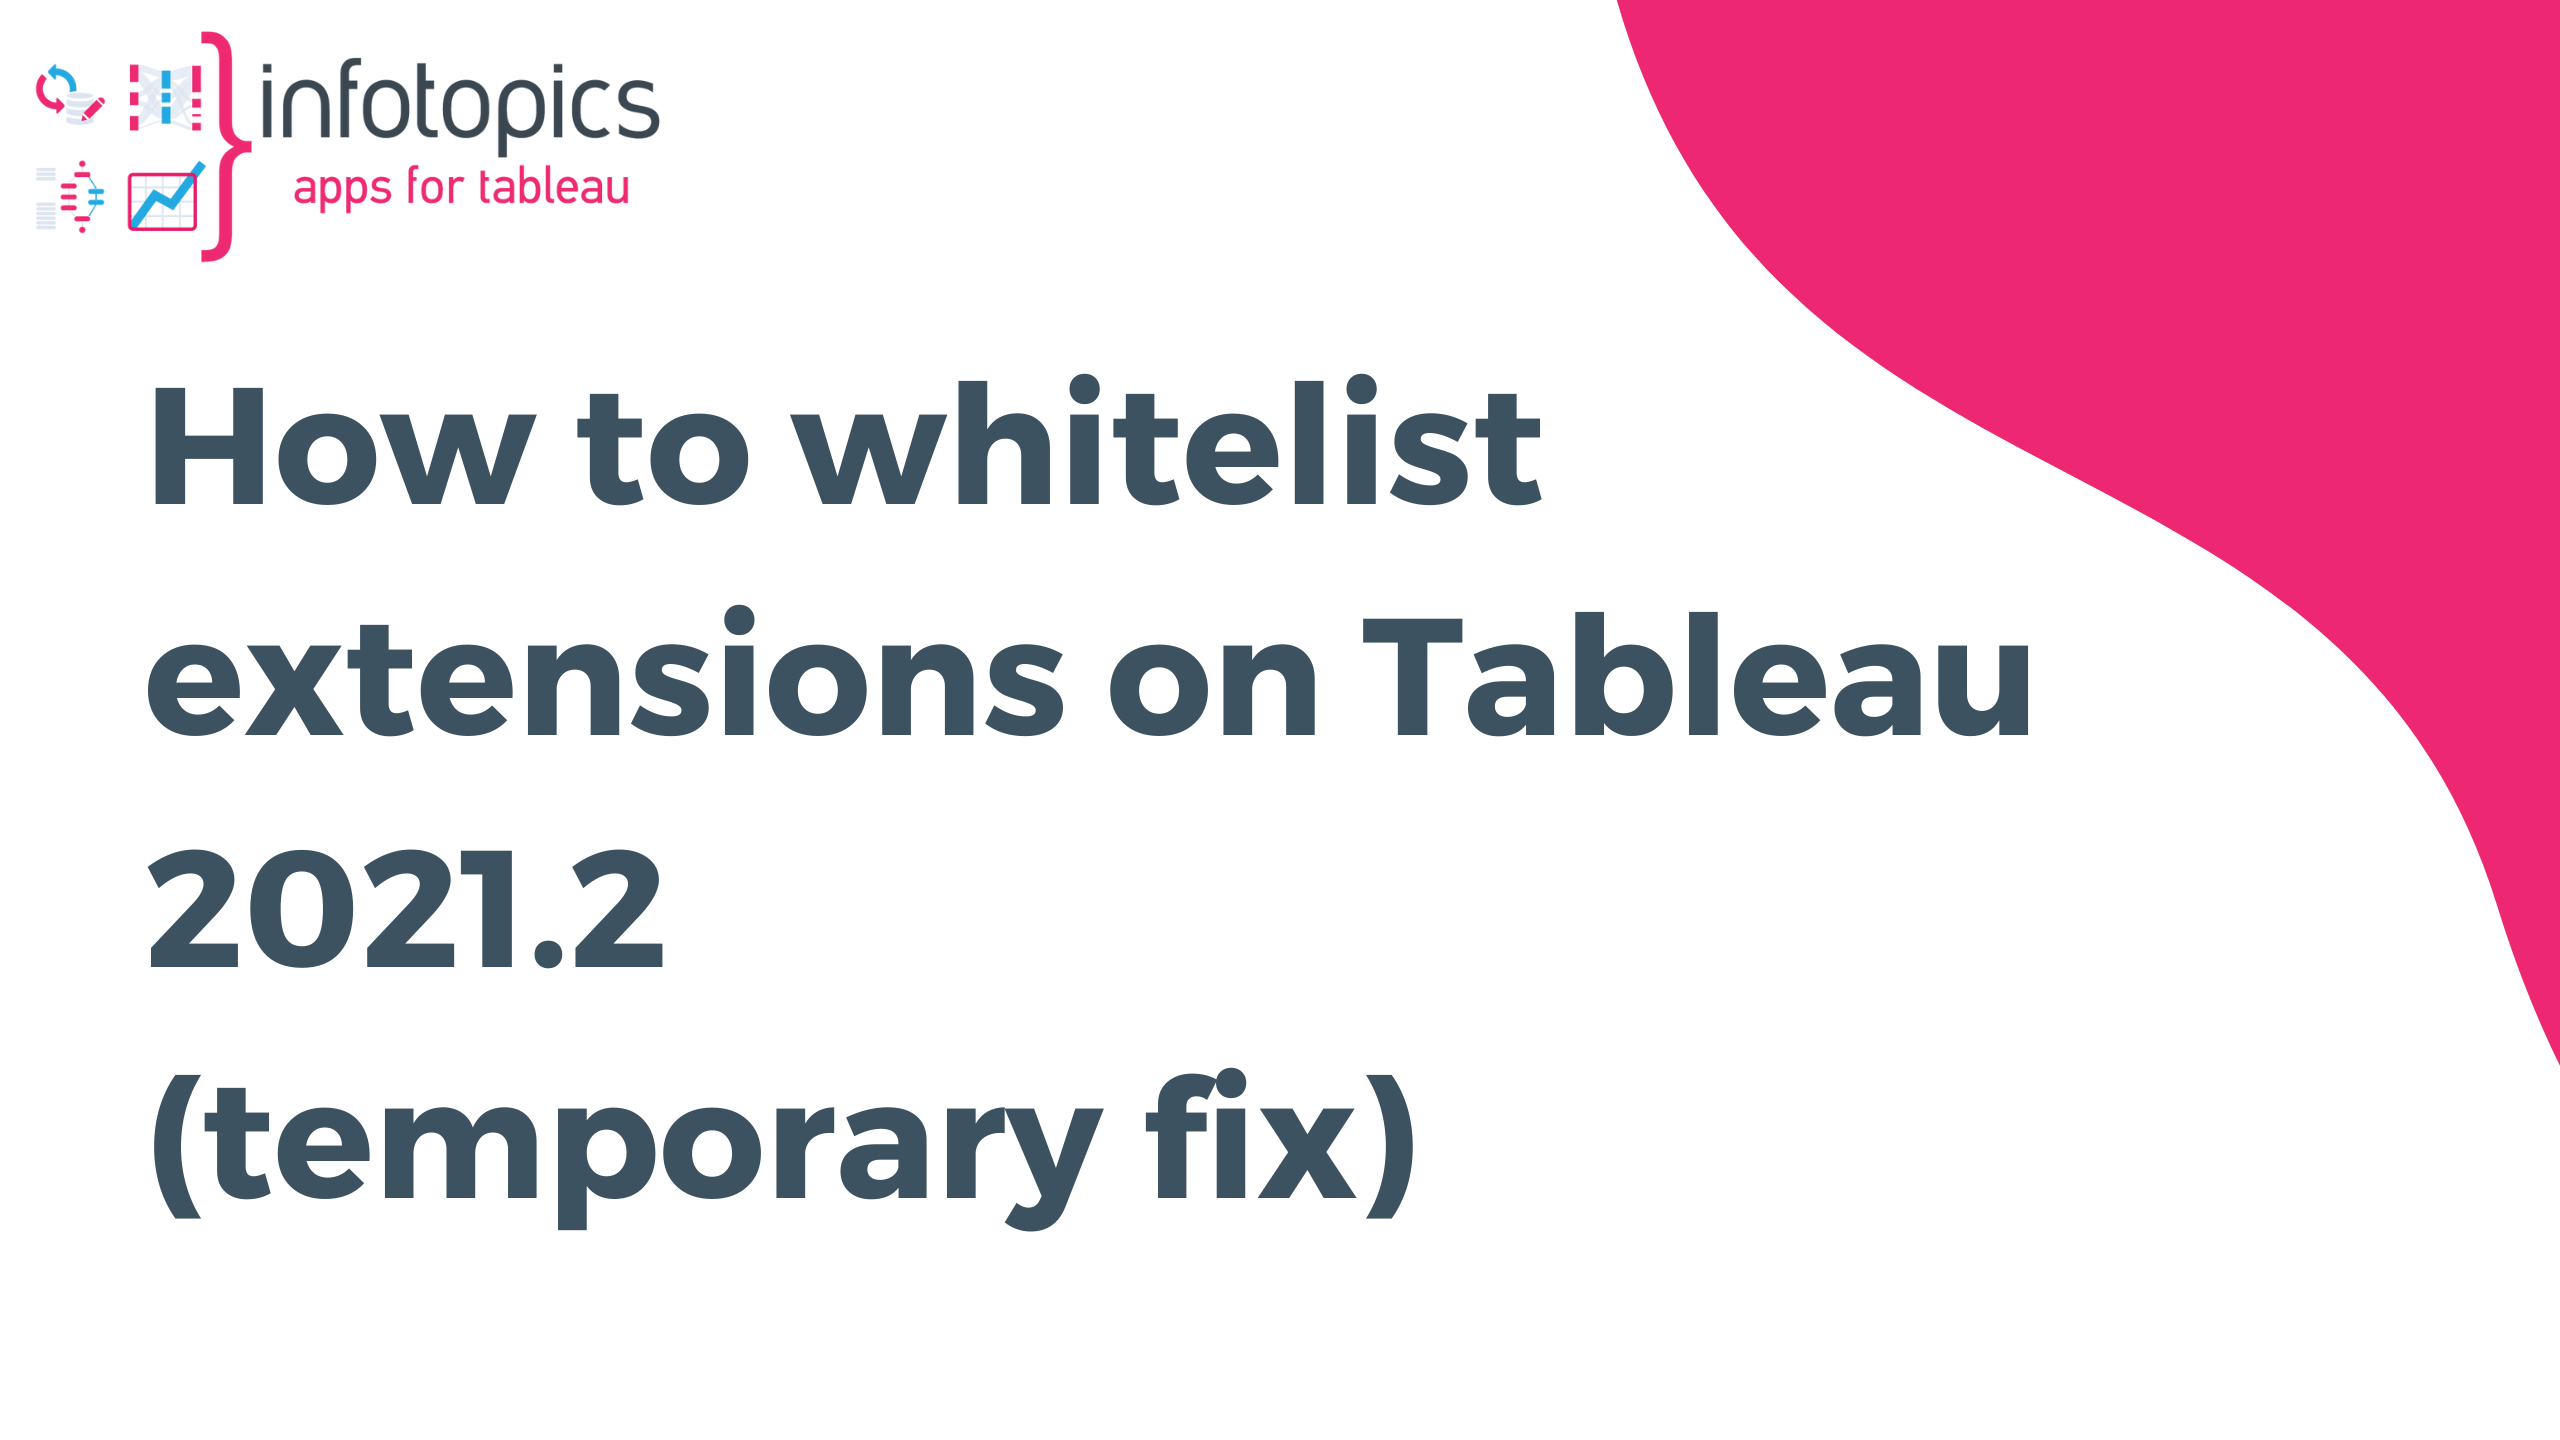 How to whitelist extensions on Tableau 2021.2 (temporary fix)